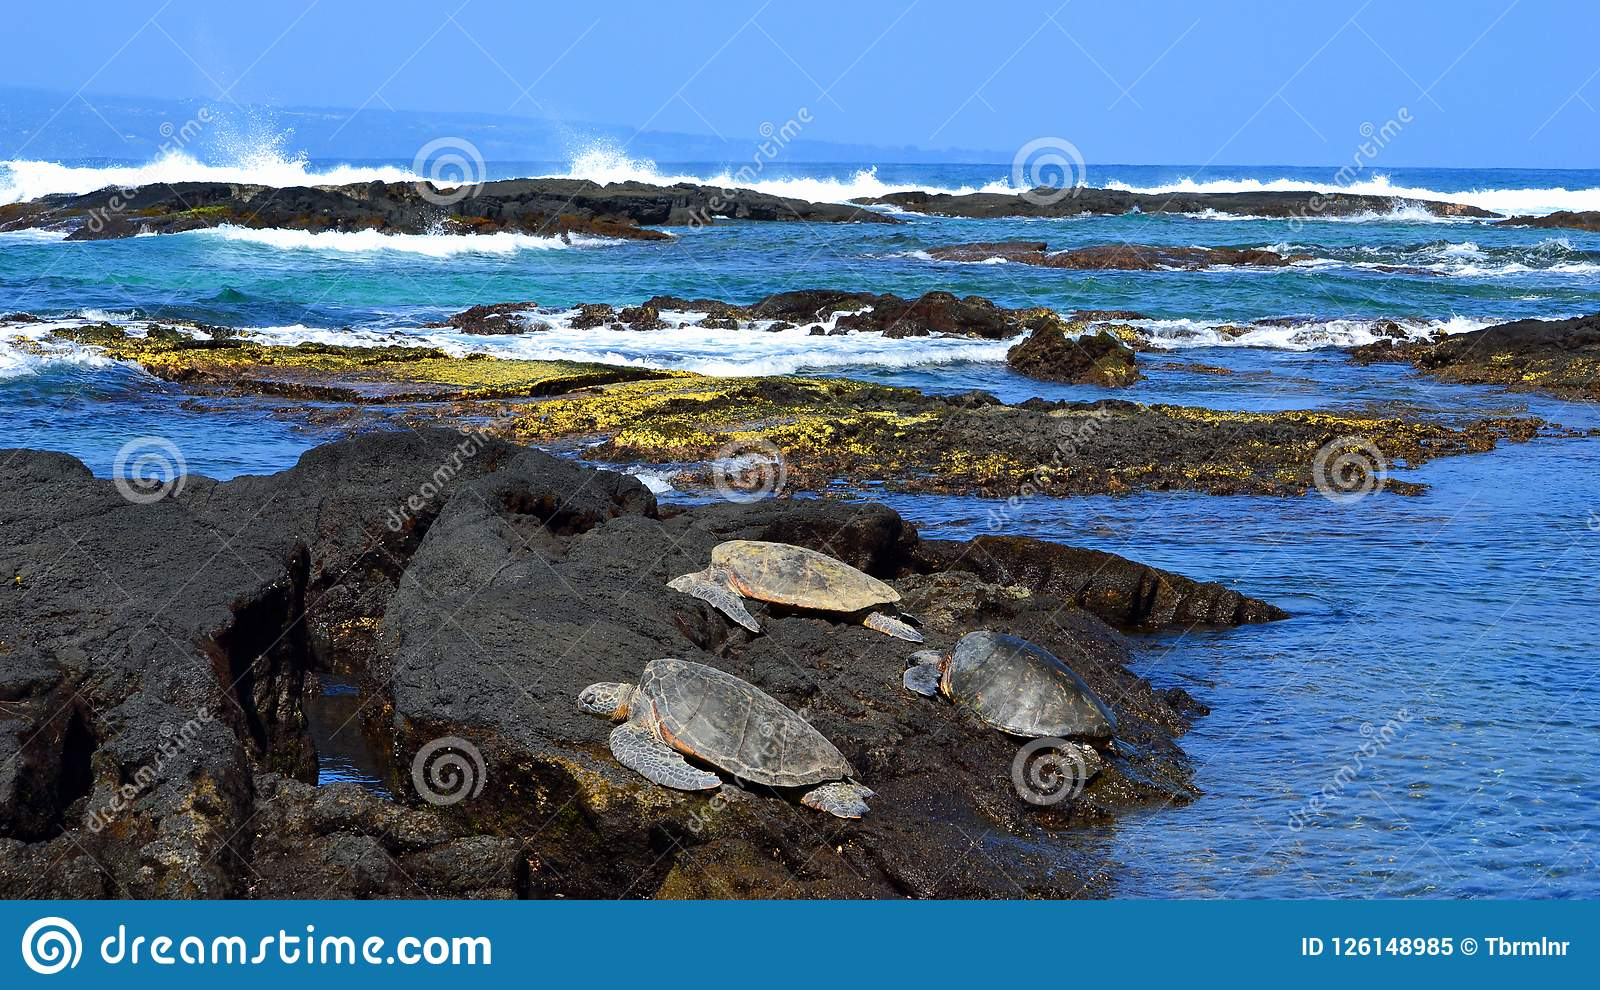 Green sea turtles resting on rocks in Hawaii panoramic wide image